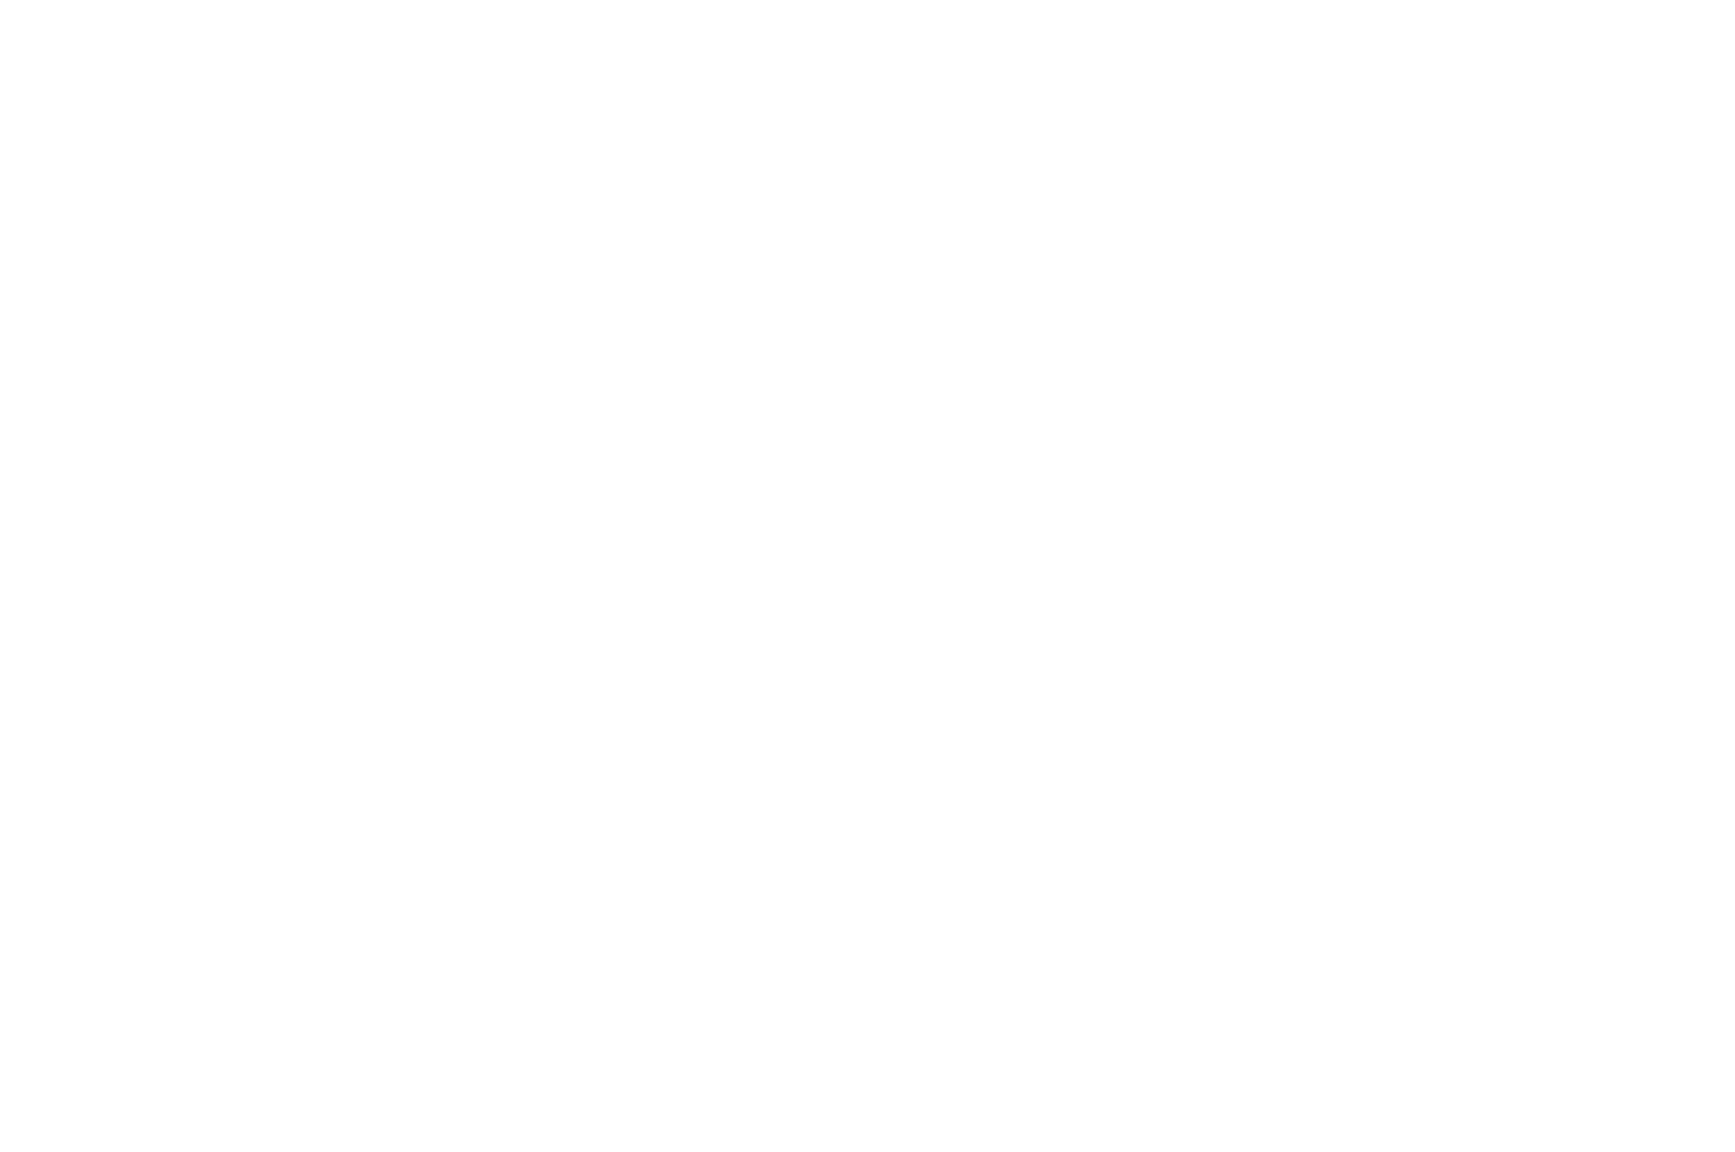 OFFICIAL SELECTION - TeaDance Gay  Lesbian Film Festival 2017 - Void.png